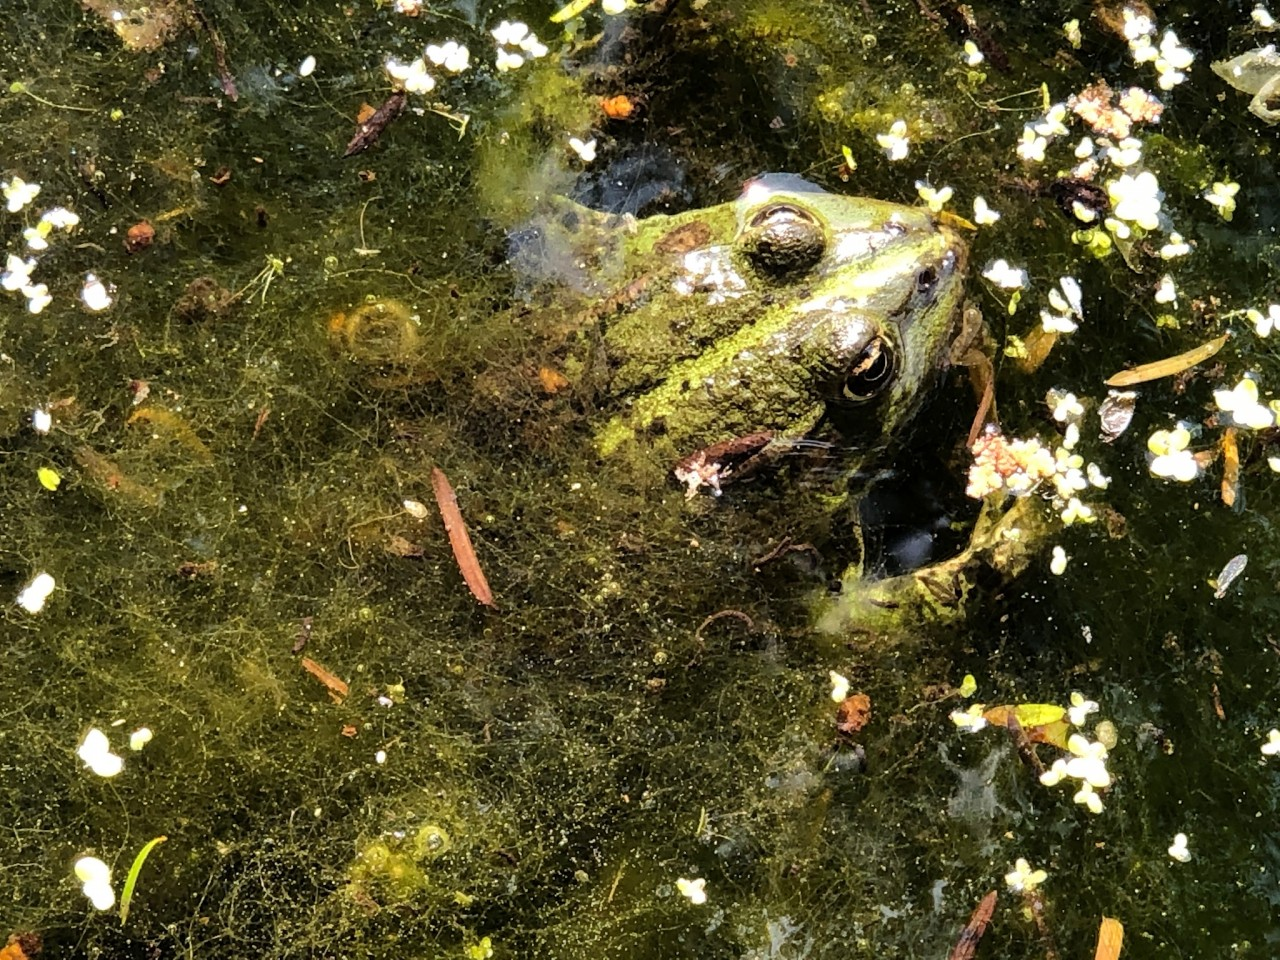 Marsh Frog photographed in Buckland